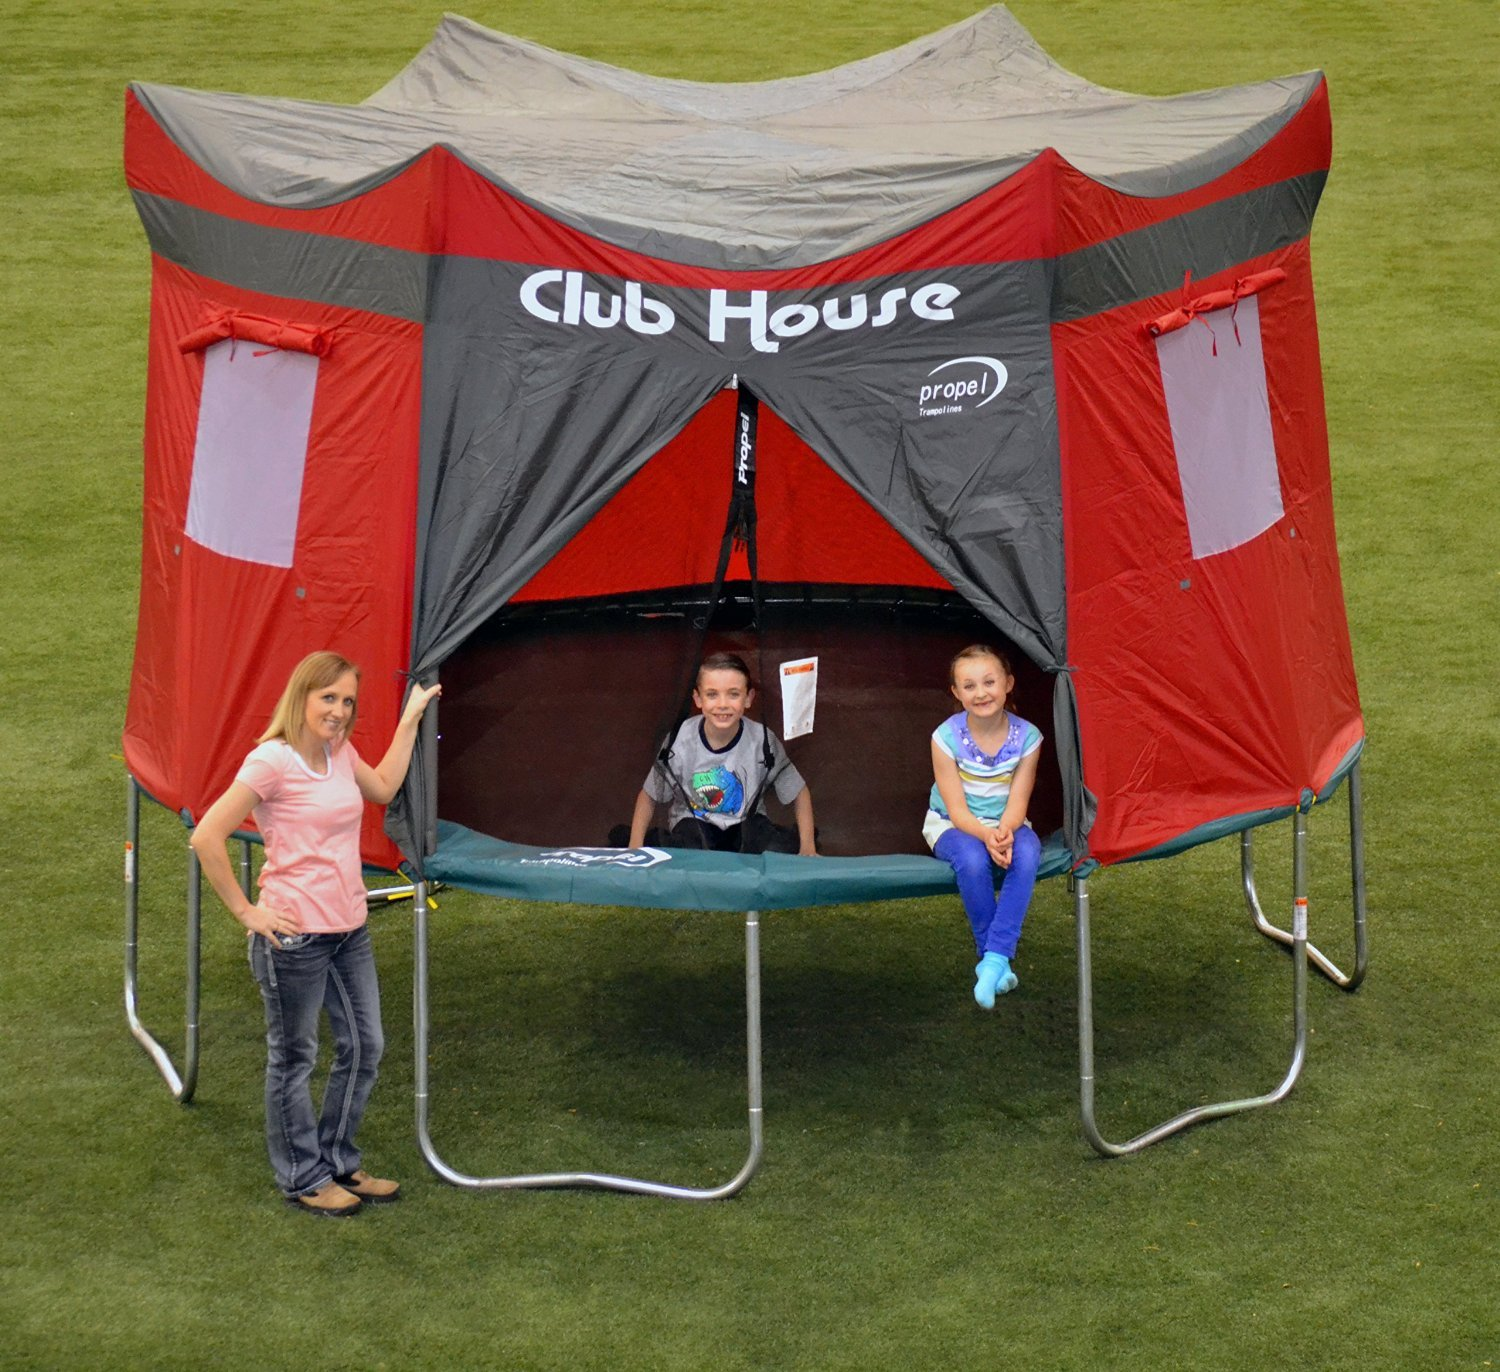 Clubhouse Tent Accessory Kit for Propel 12' Trampoline with 6 pole enclosure - TENT ONLY by Propel (Image #3)